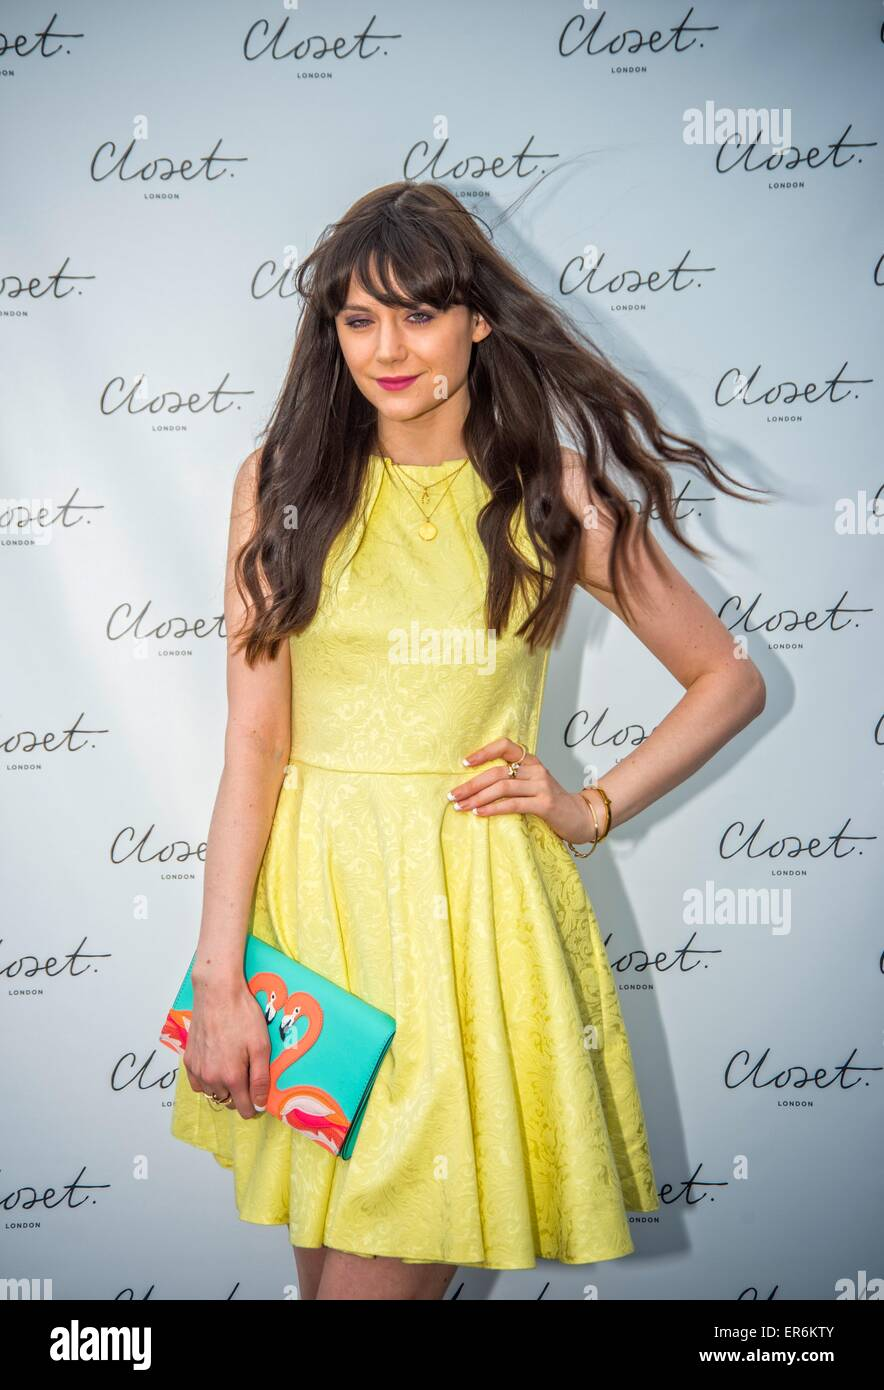 Lila Parsons attending the 'Closet London Re-Brand Party' - Stock Image